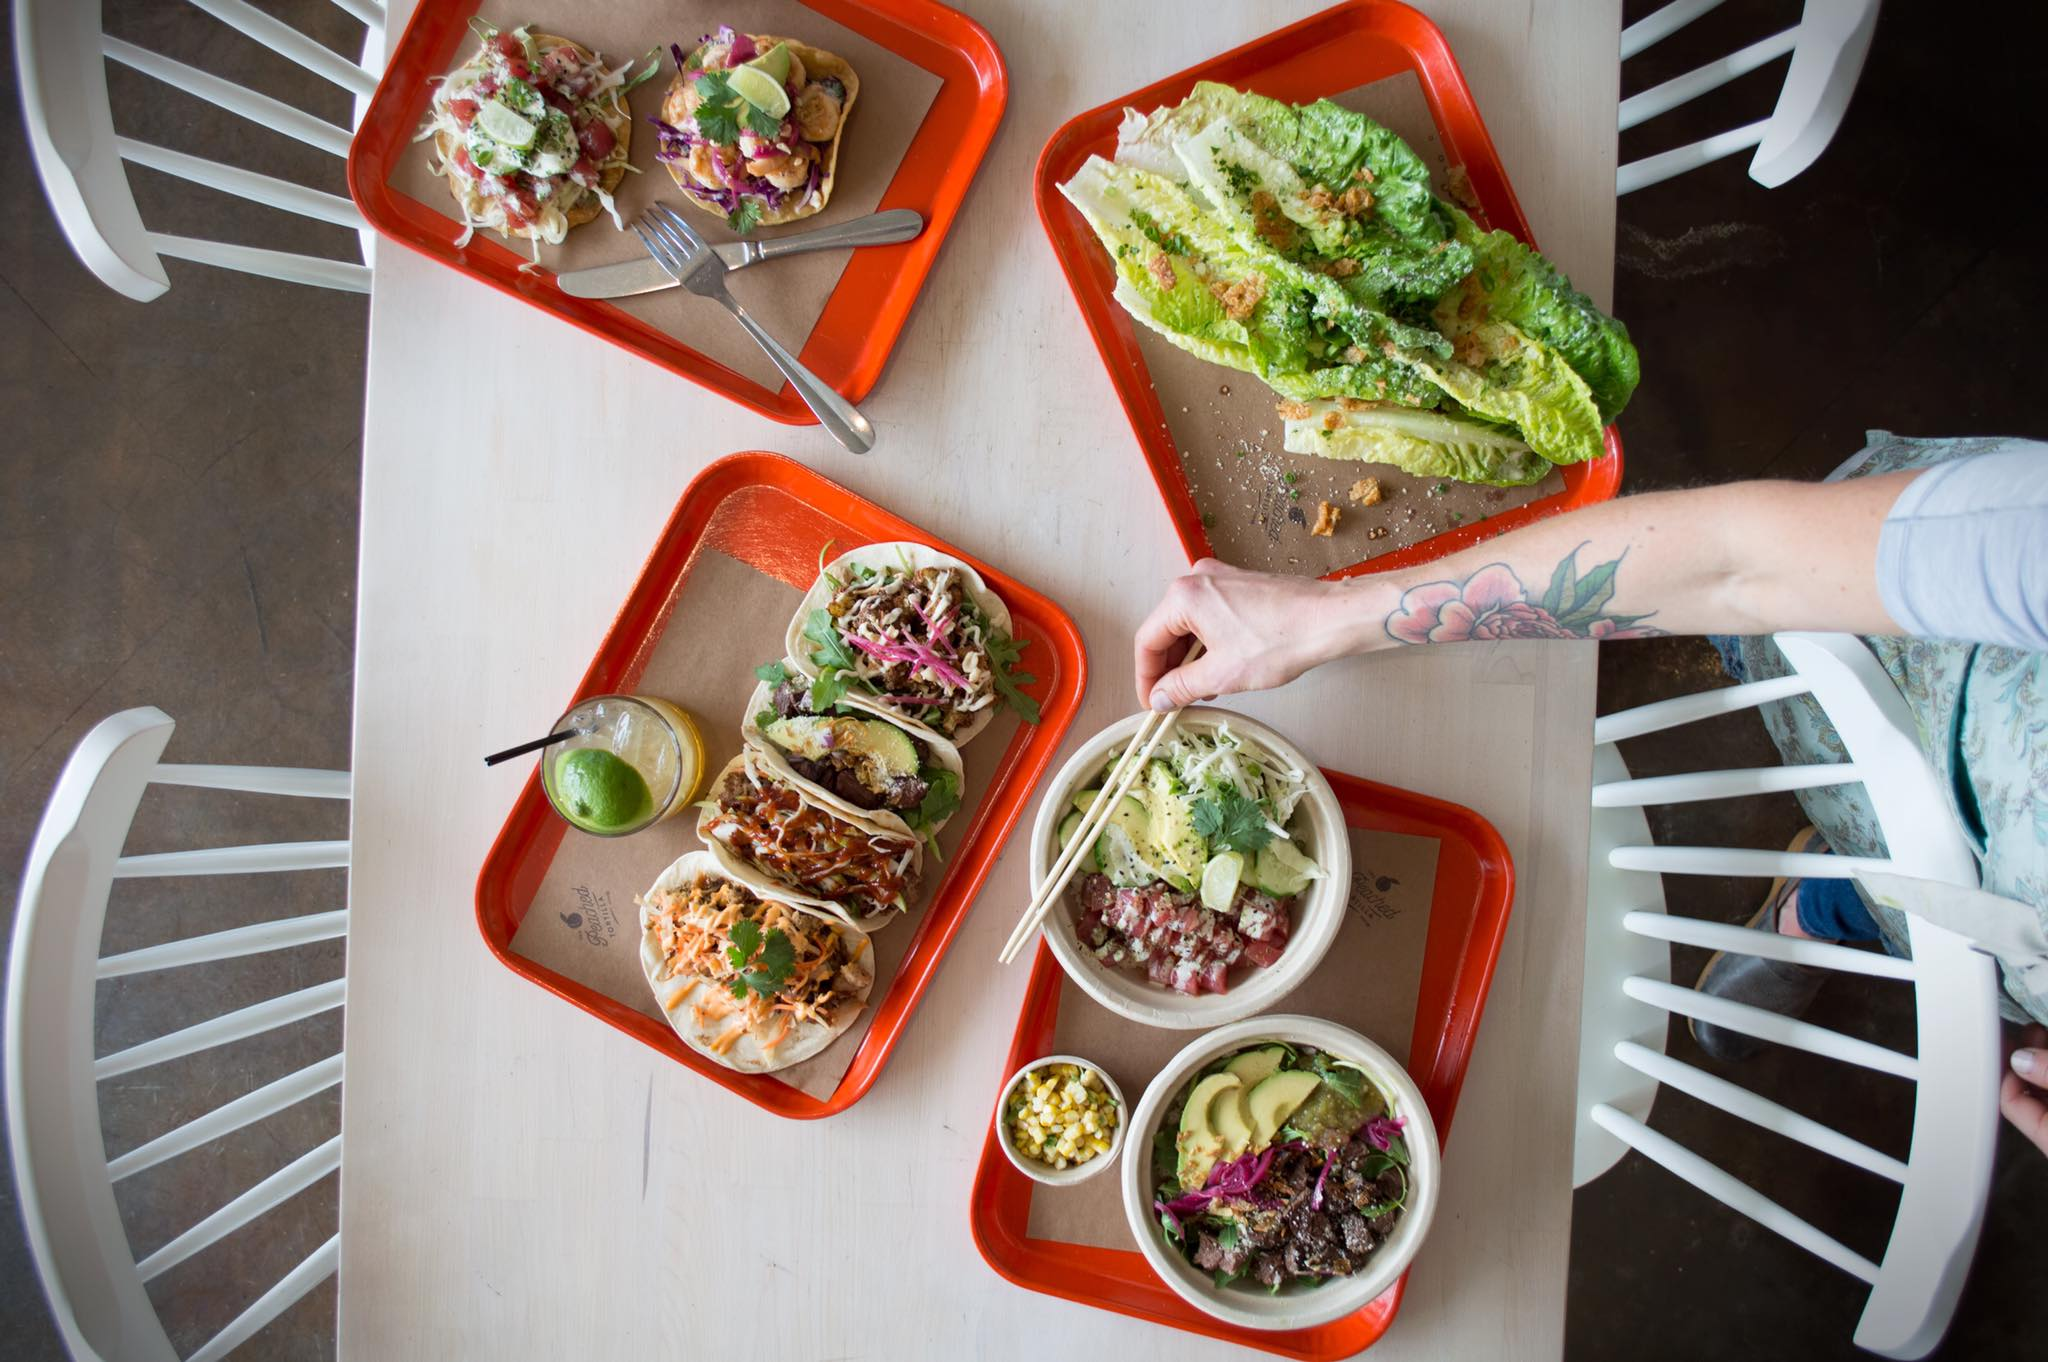 Lunch dishes from Peached Tortilla